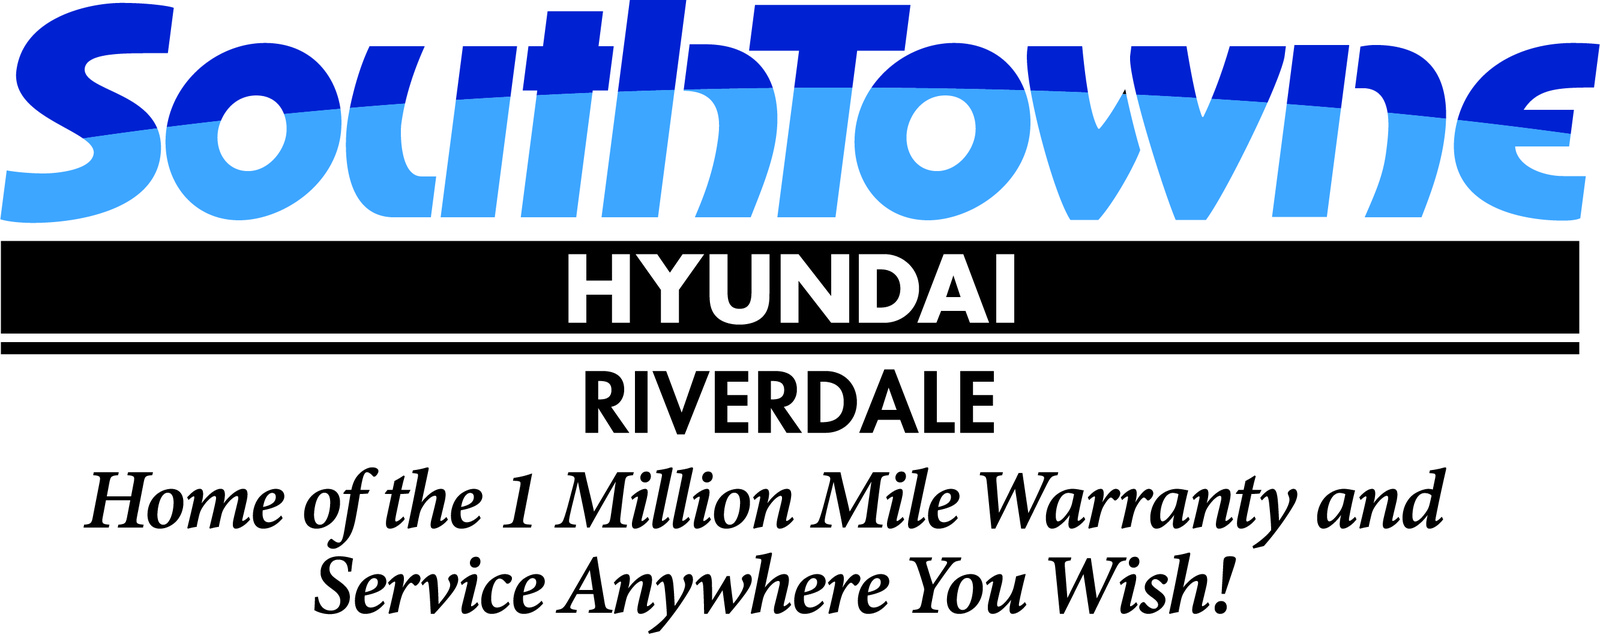 hight resolution of southtowne hyundai riverdale ga read consumer reviews browse used and new cars for sale